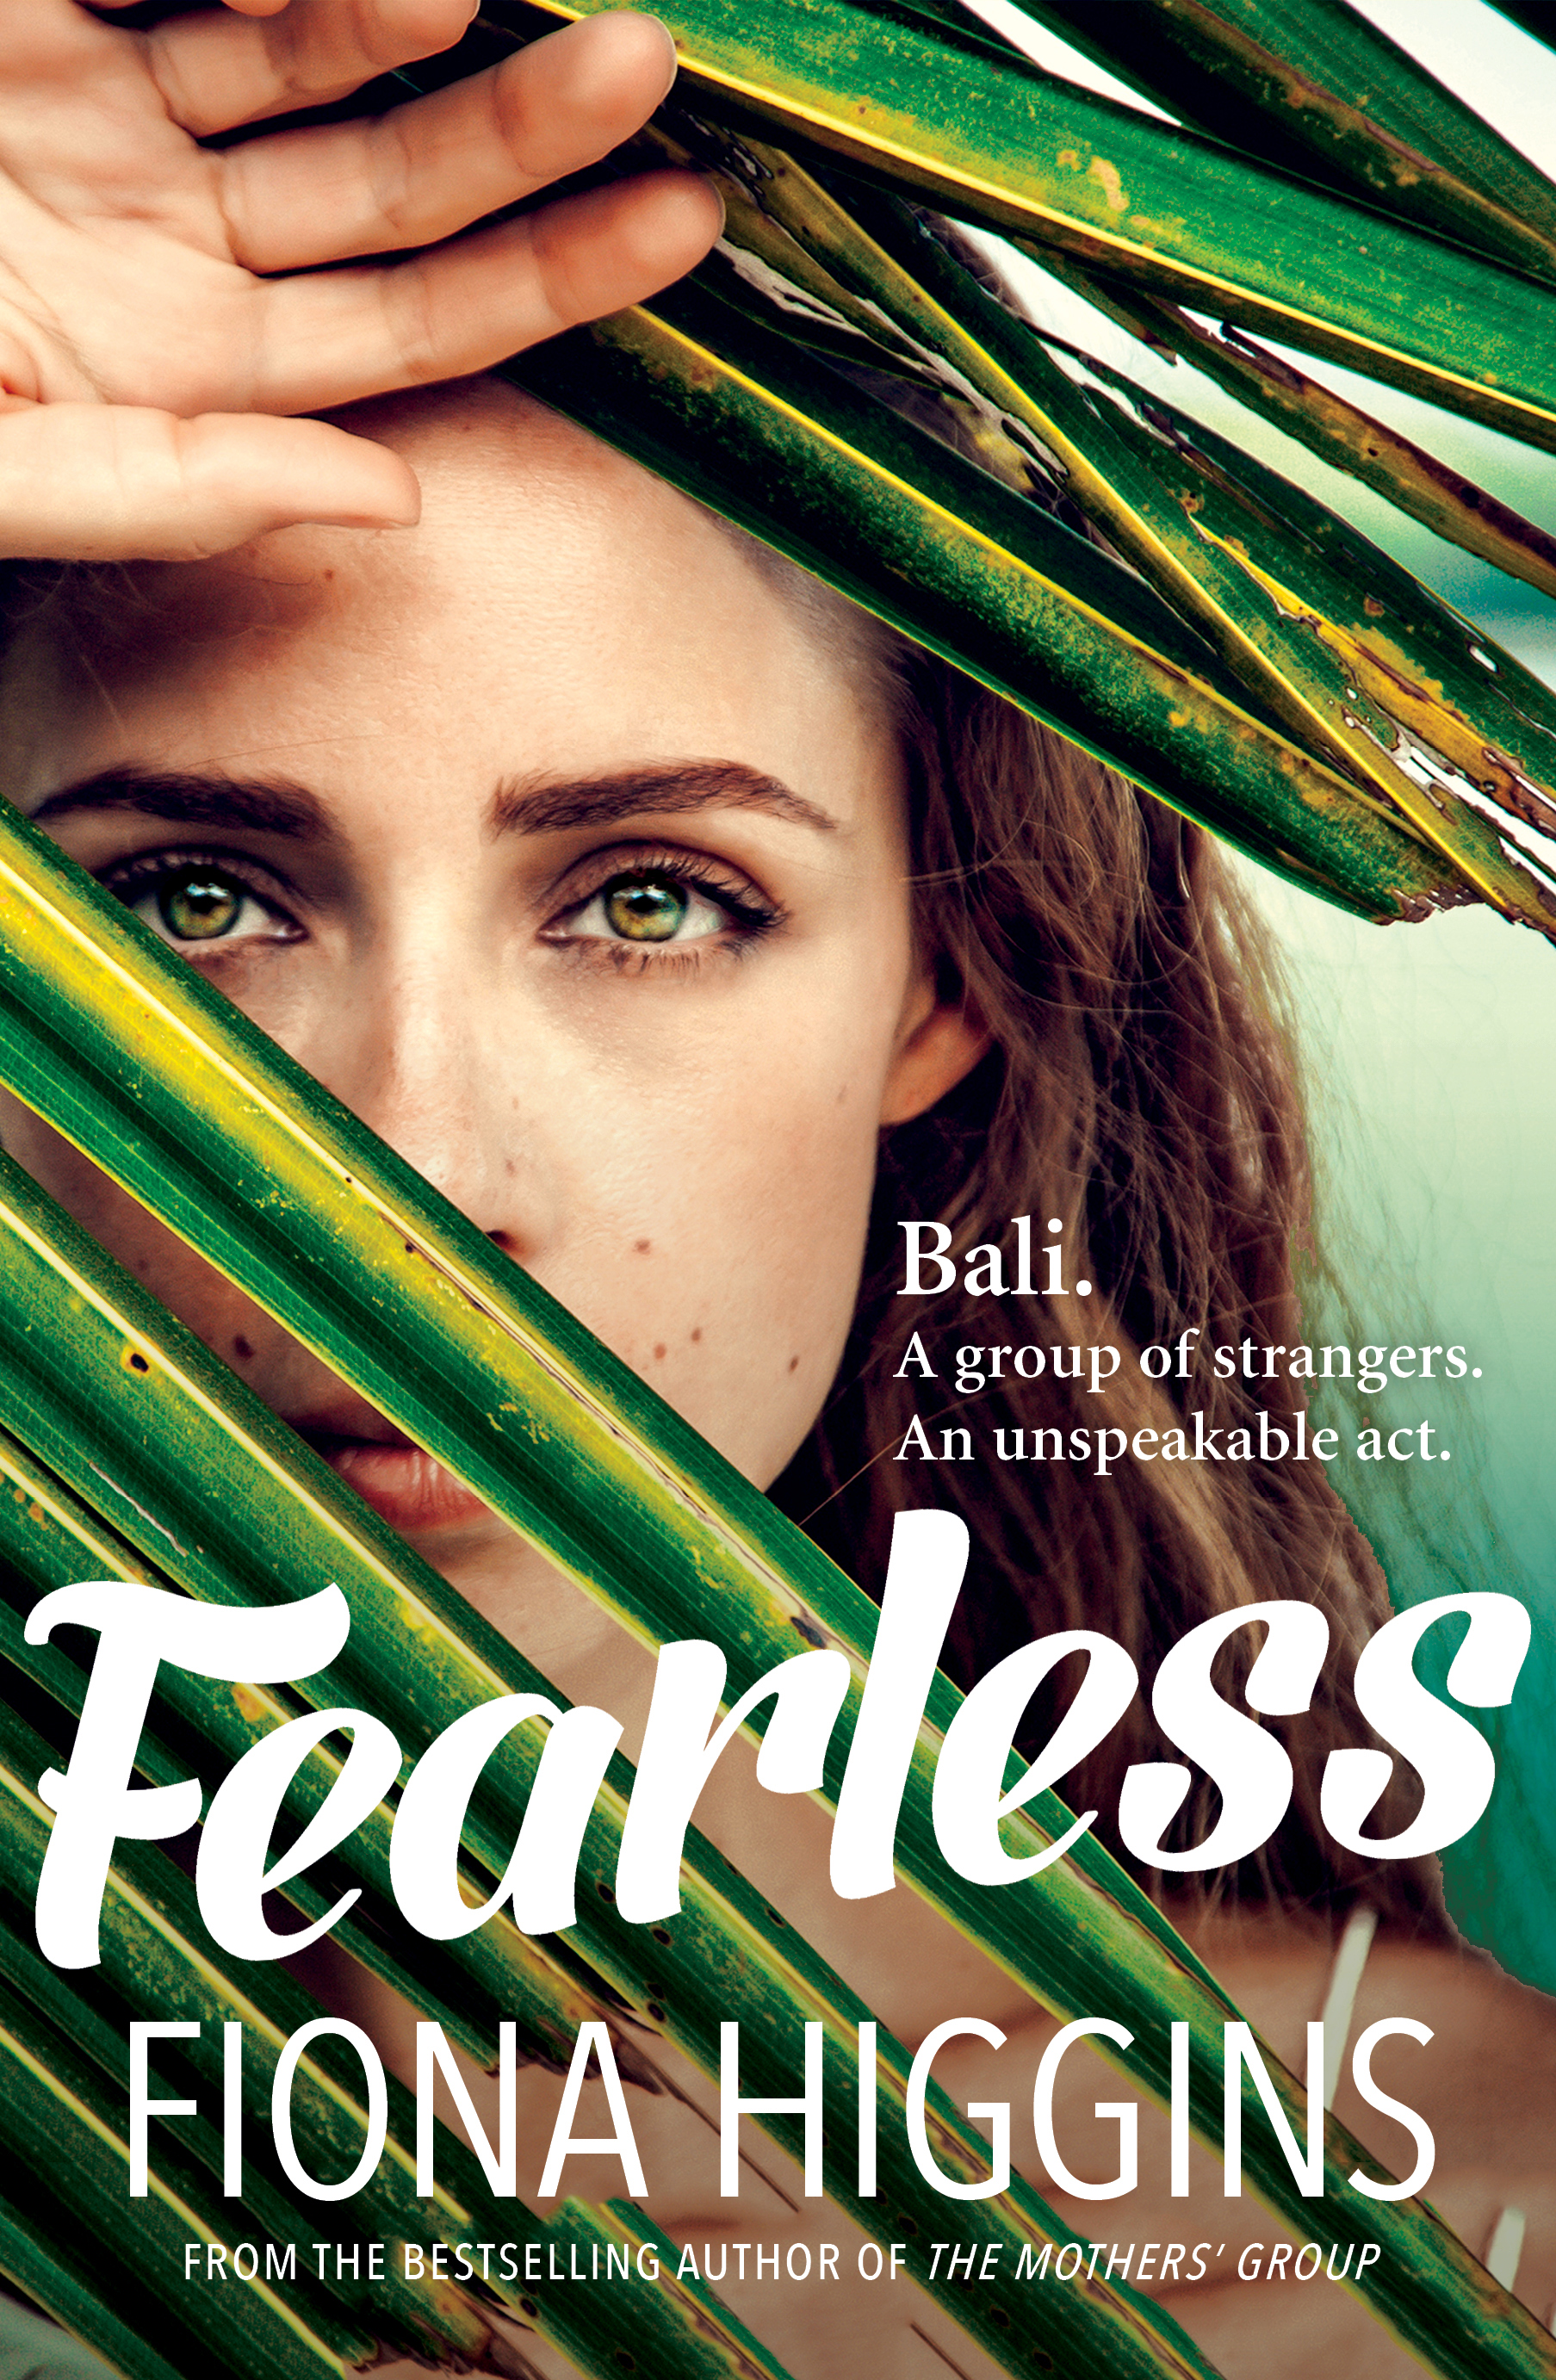 Fearless  - Fiona Higgins Rating: 4.5 / 5